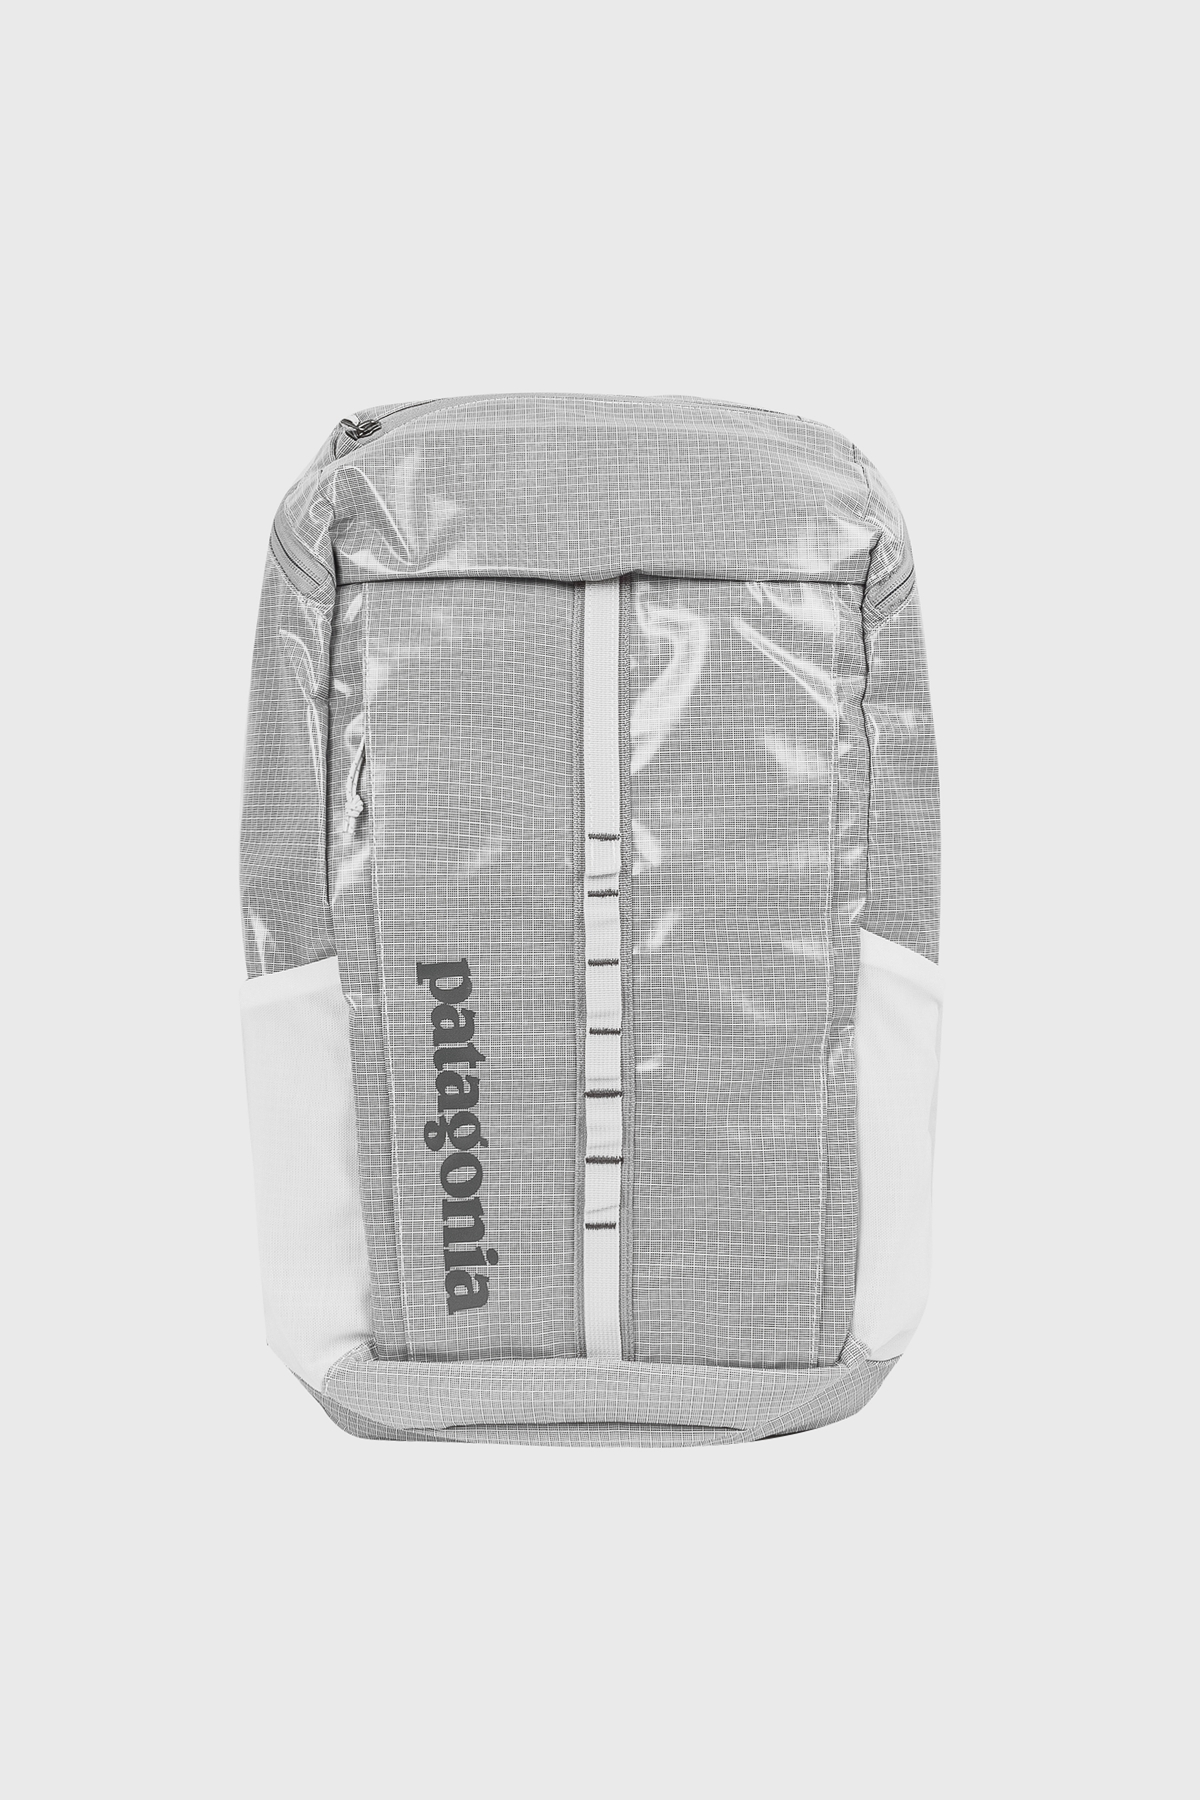 Patagonia - Black Hole® Pack 25L - Birch White